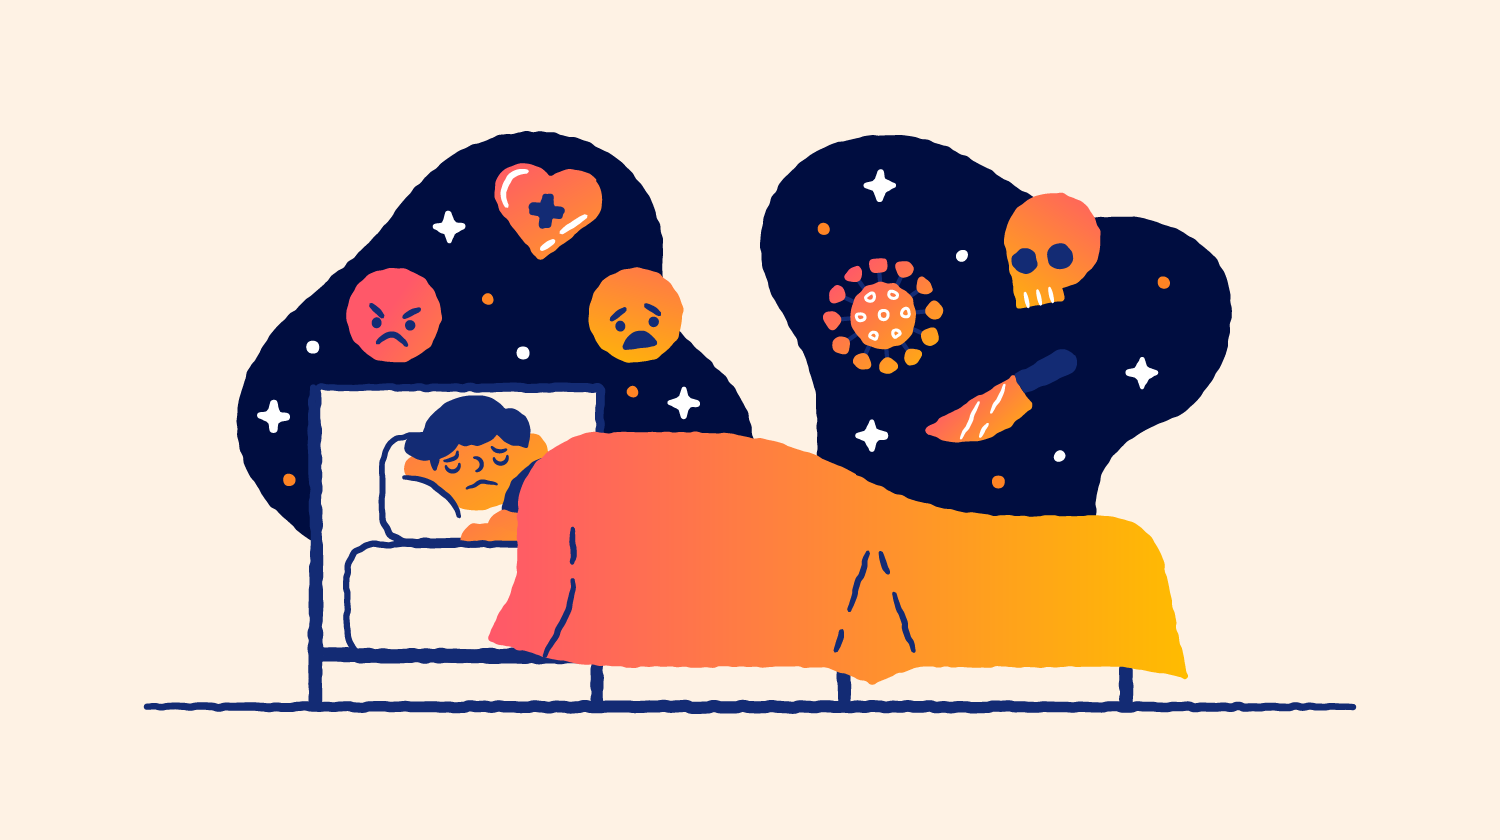 A person sleeps while images of nightmares float around his head. Illustration.